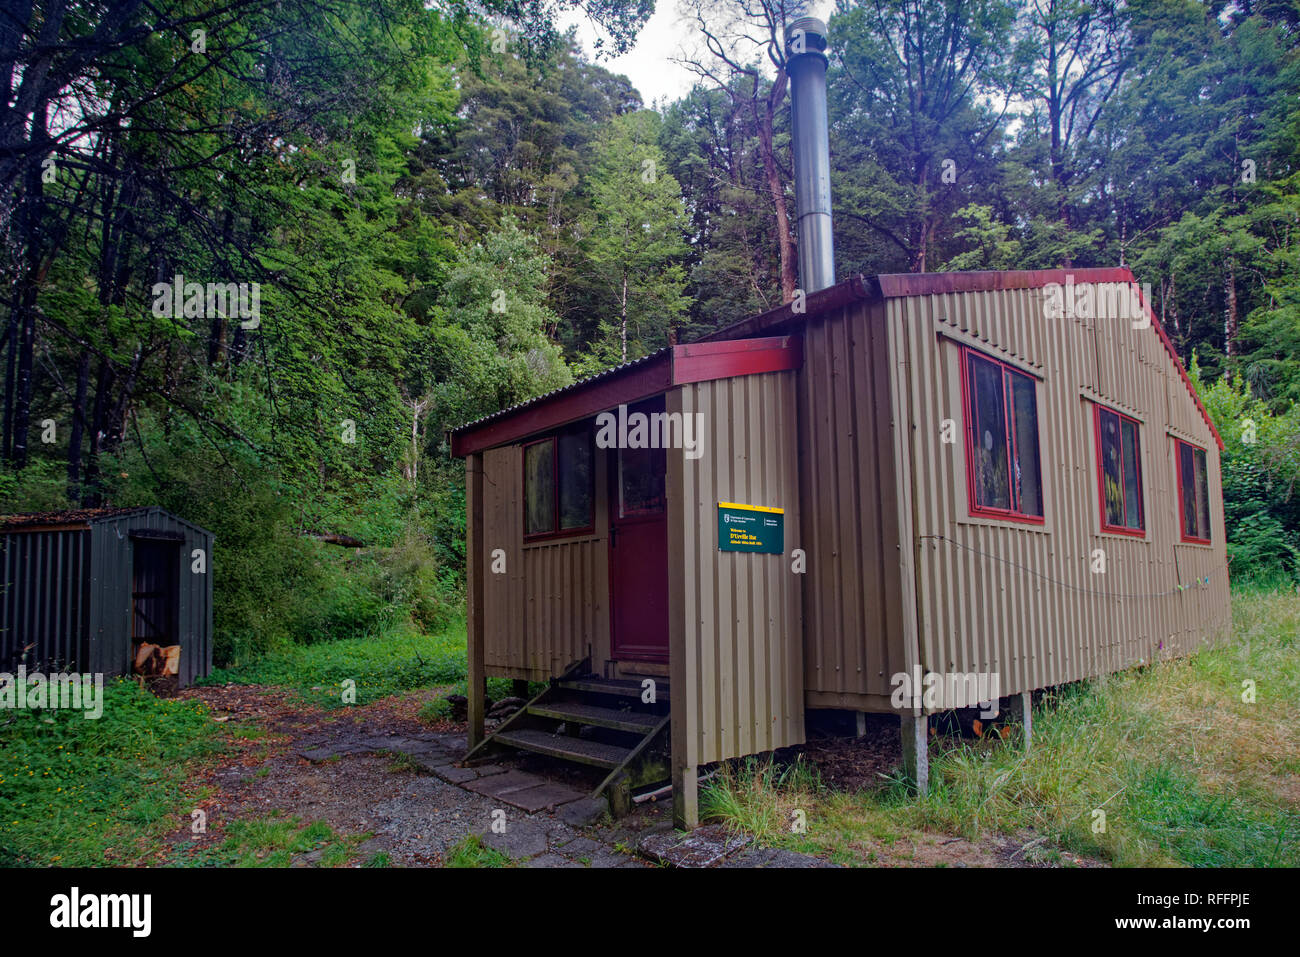 D'Urville hut, DoC hut or Dept of Conservation hut, Nelson Lakes National Park, New Zealand. - Stock Image